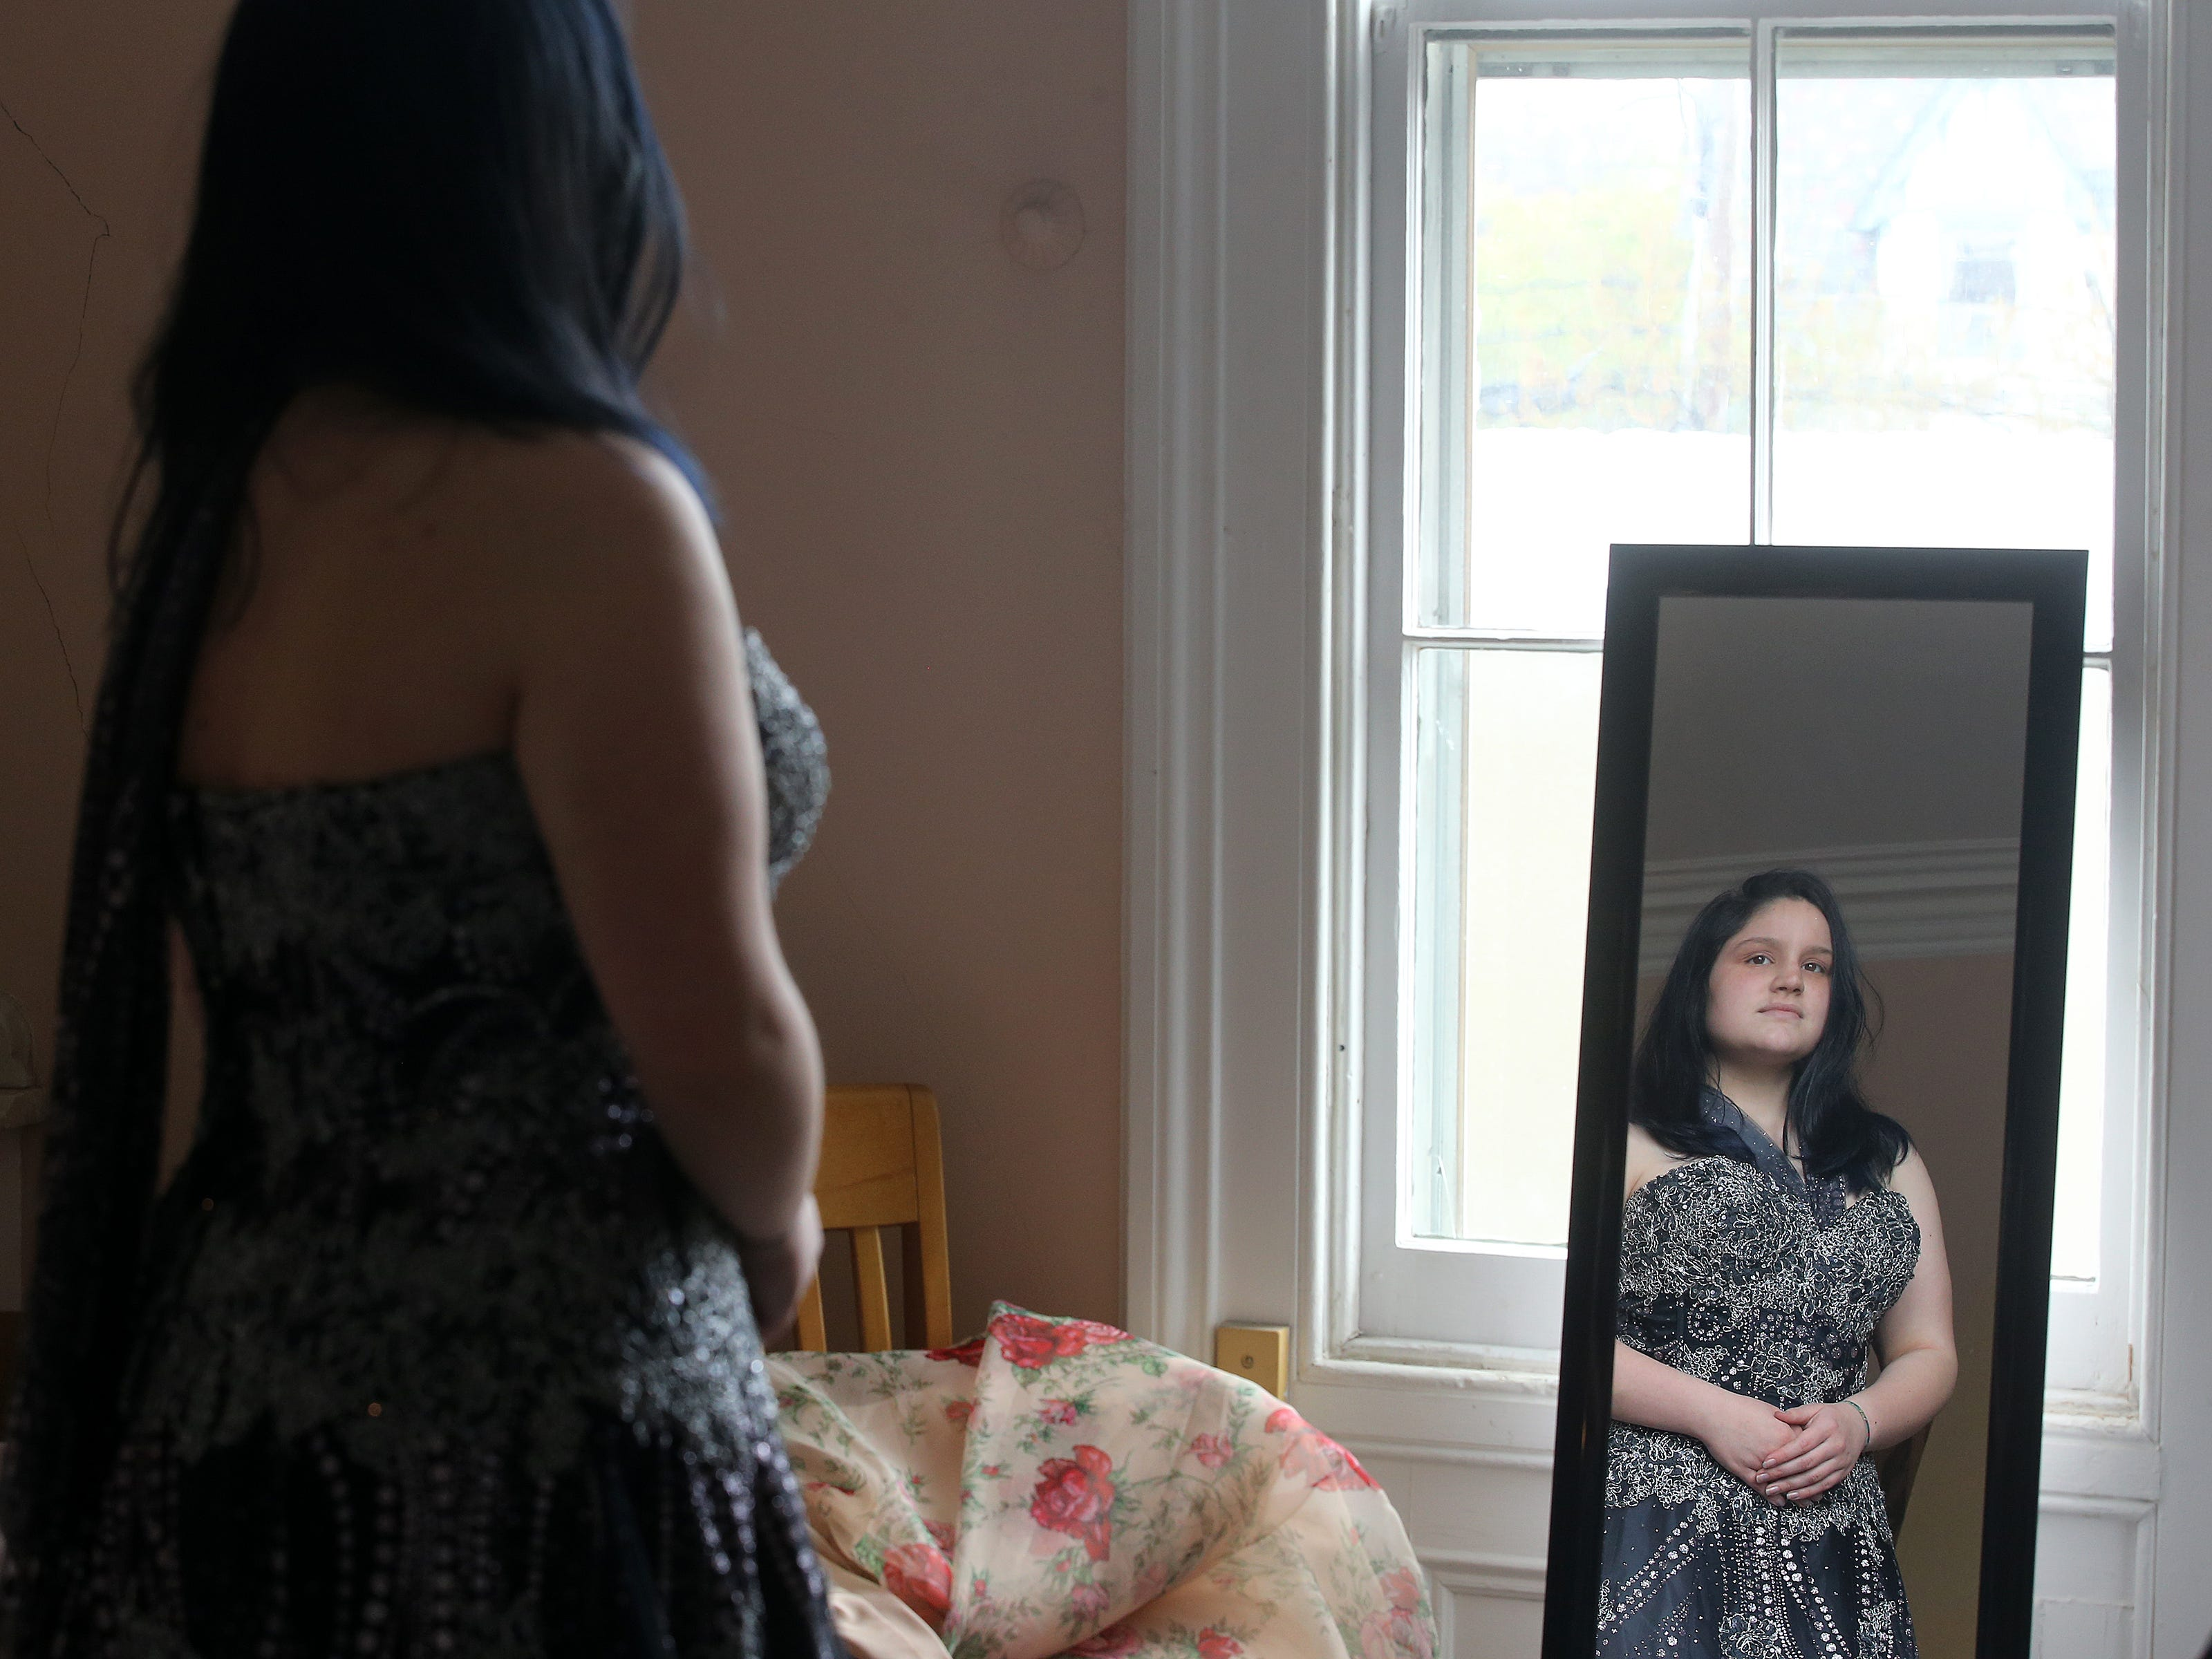 Laci Griffin, 14, of Freehold Boro searches for the perfect prom dress during Lunch Break's 4th Annual Prom Giveaway Event at the Woman's Club of Red Bank in Red Bank, NJ Monday, April 22, 2019.